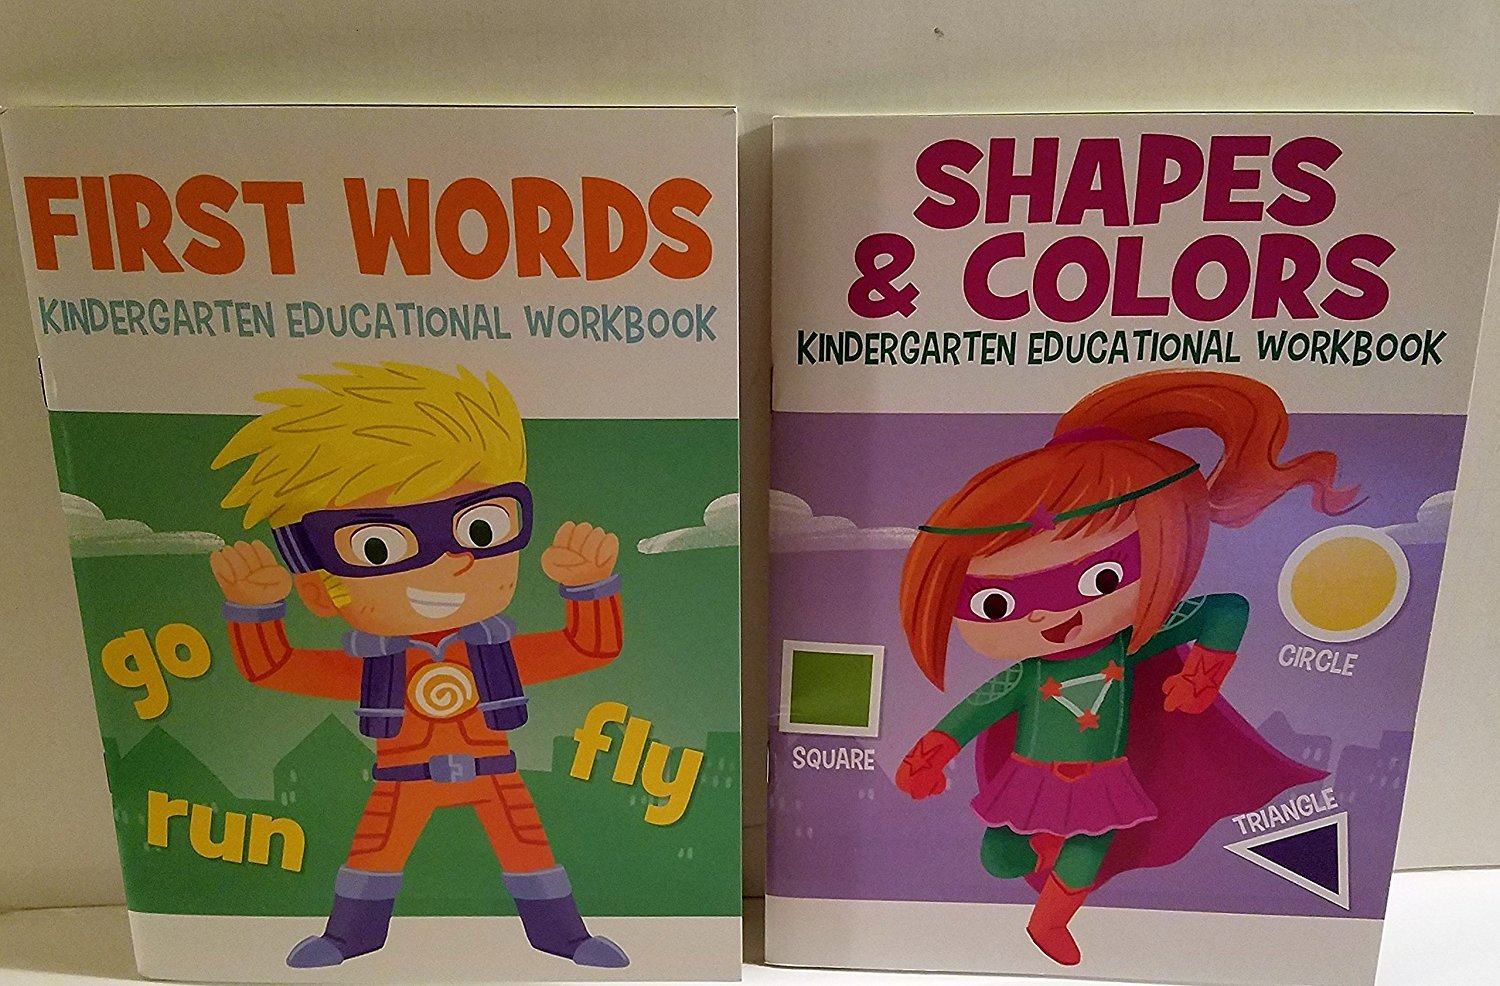 Two Kindergarten Educational Workbooks - Shapes and Colors, First Words